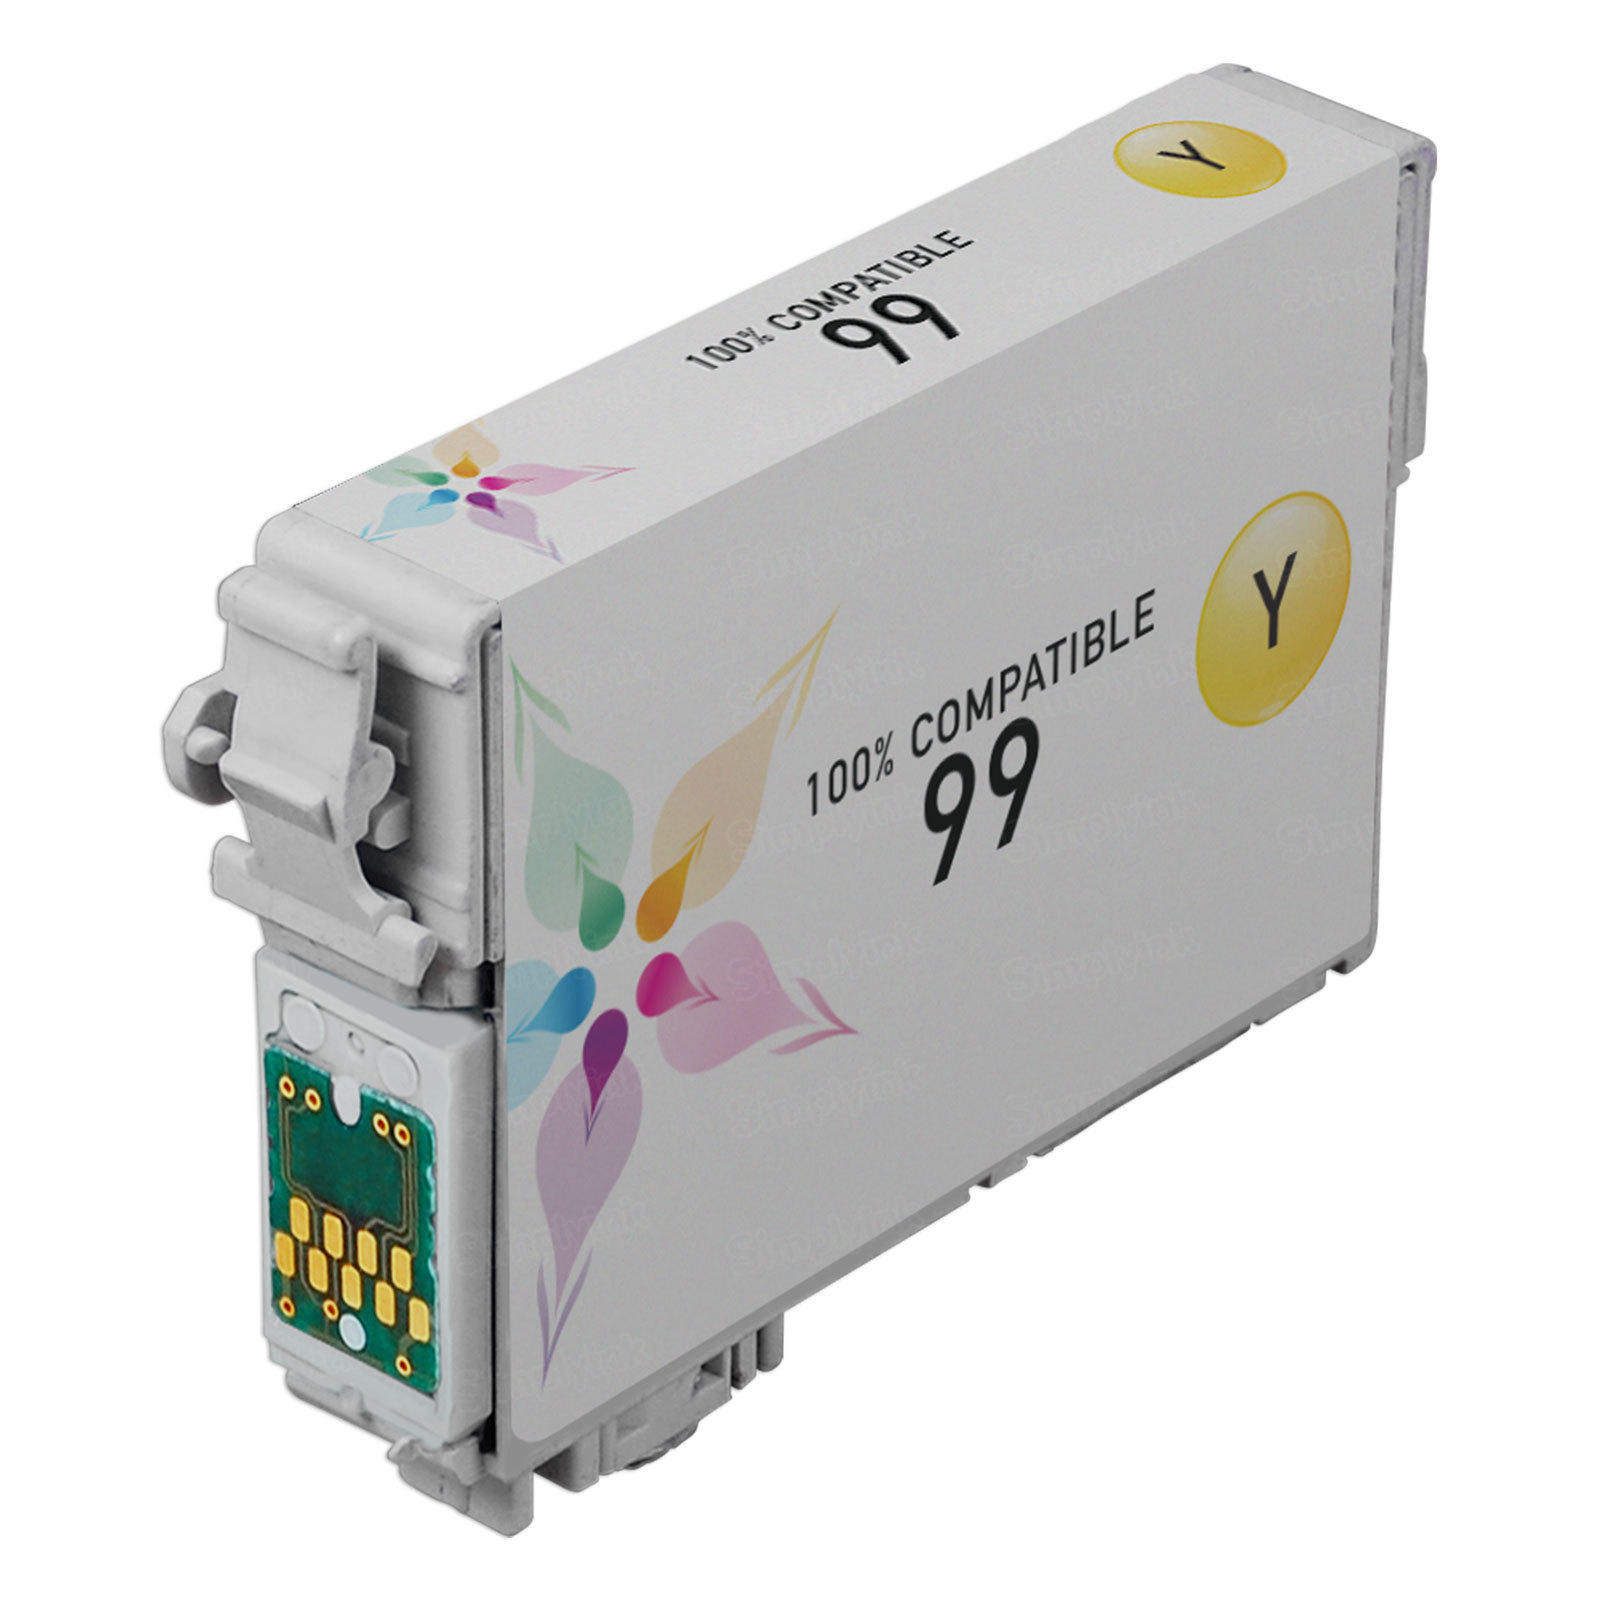 Epson Remanufactured T099420 Yellow Inkjet Cartridge for the Artisan 700, 800